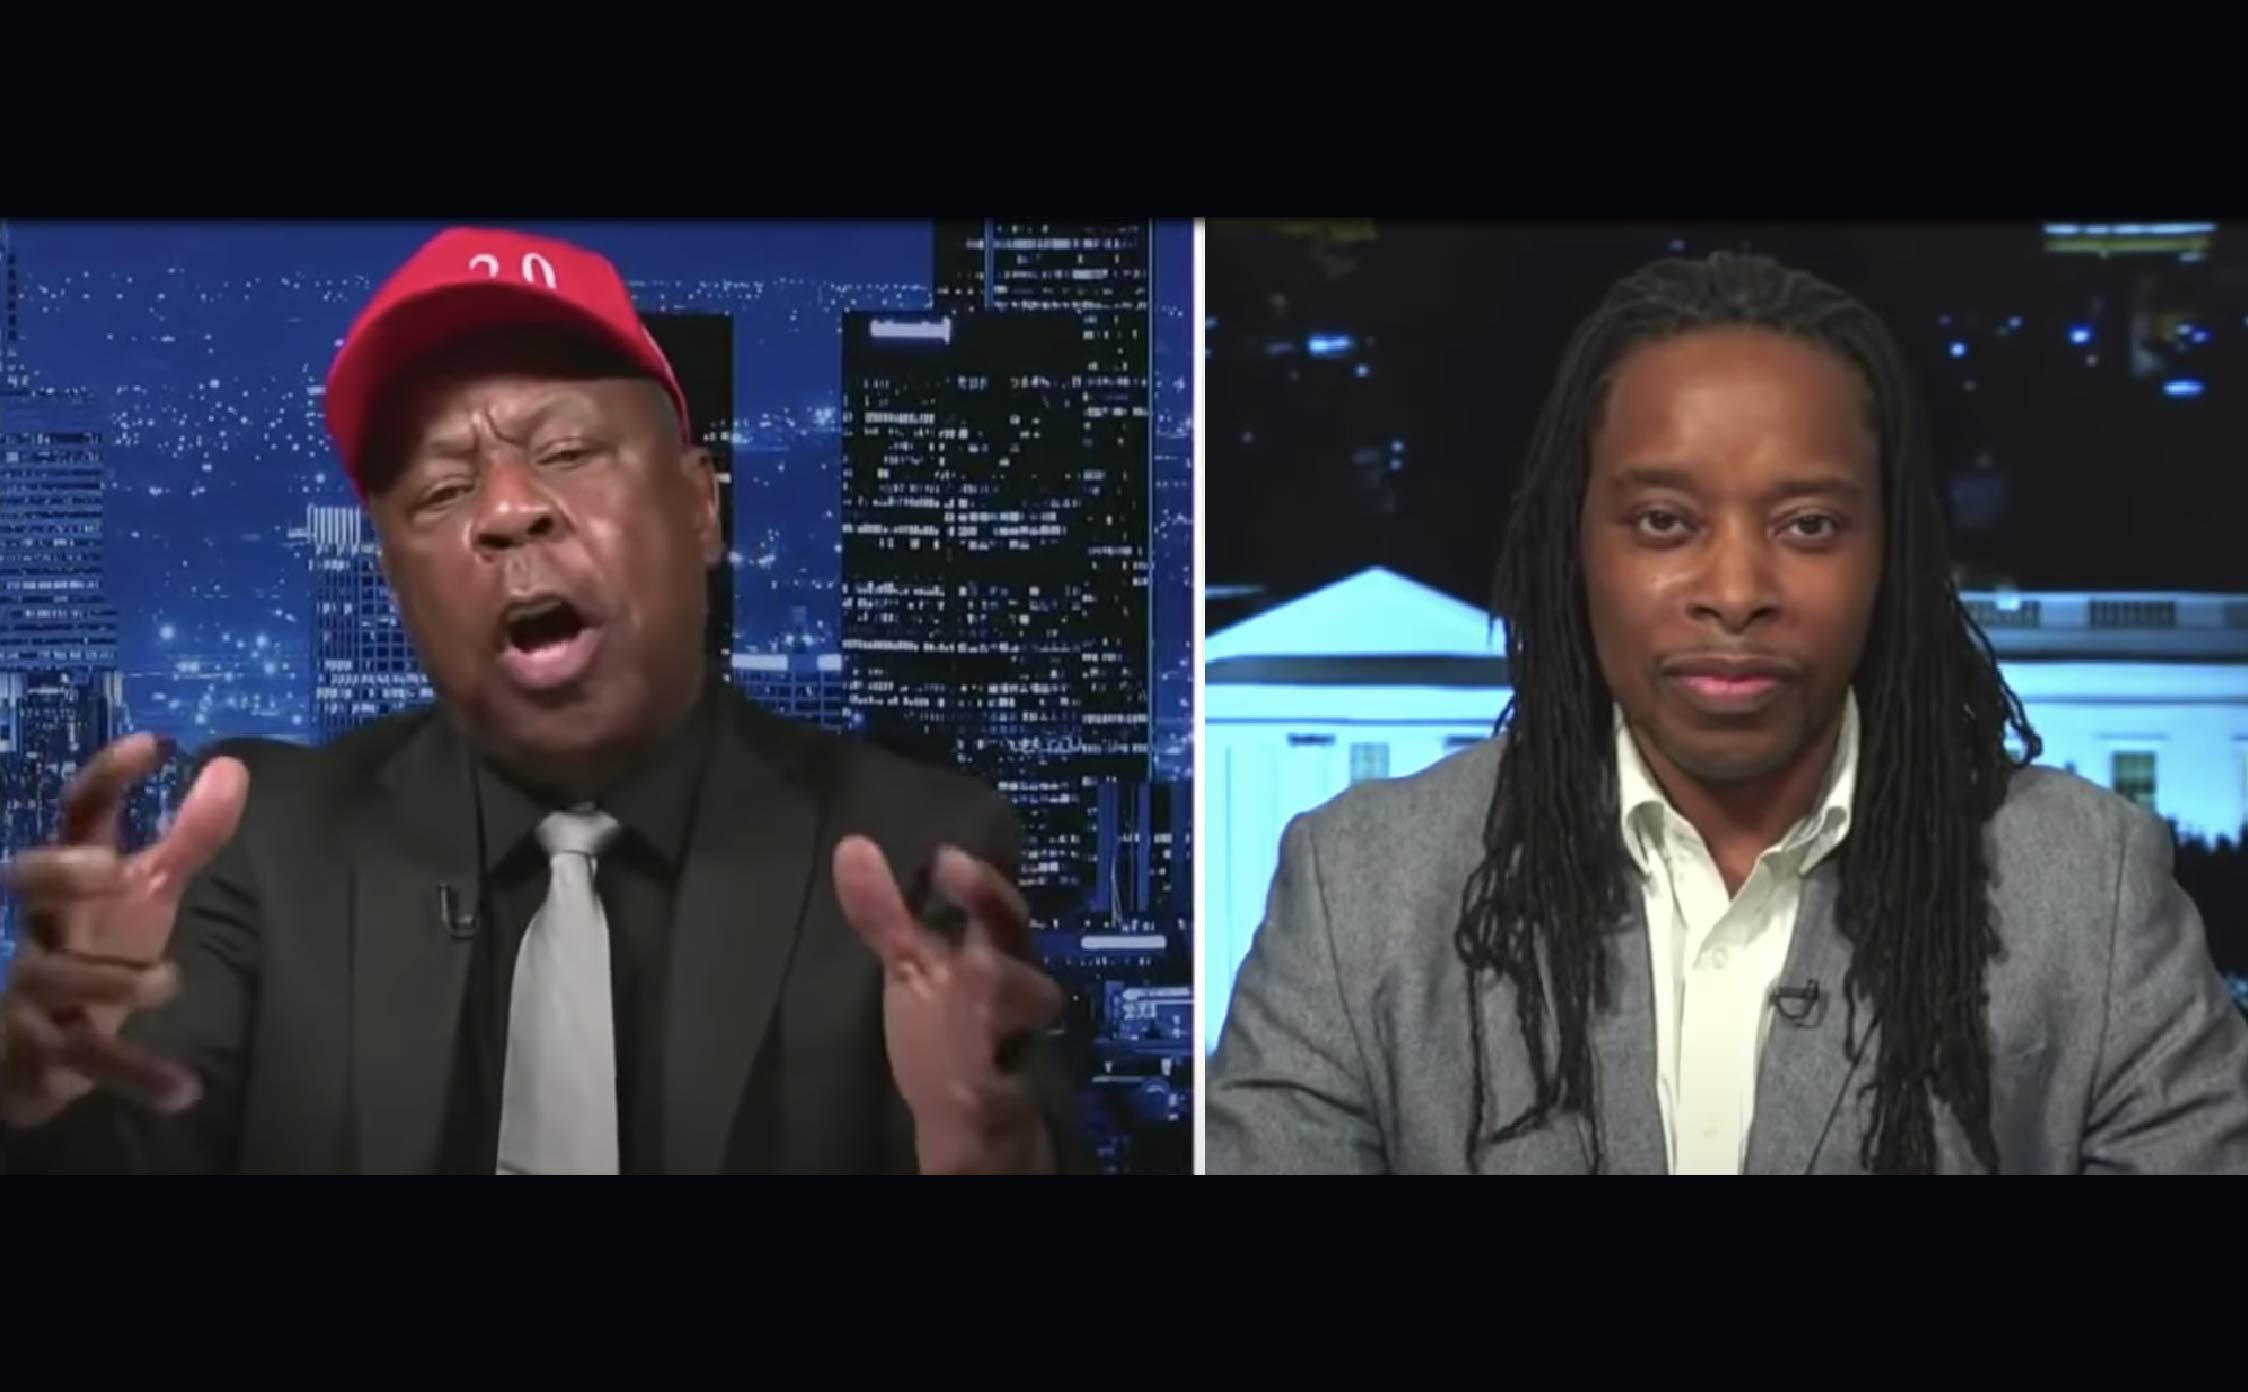 [VIDEO] Leo Terrell Leaves Smug, Crackpot Liberal Professor Tongue-Tied During Fiery Debate